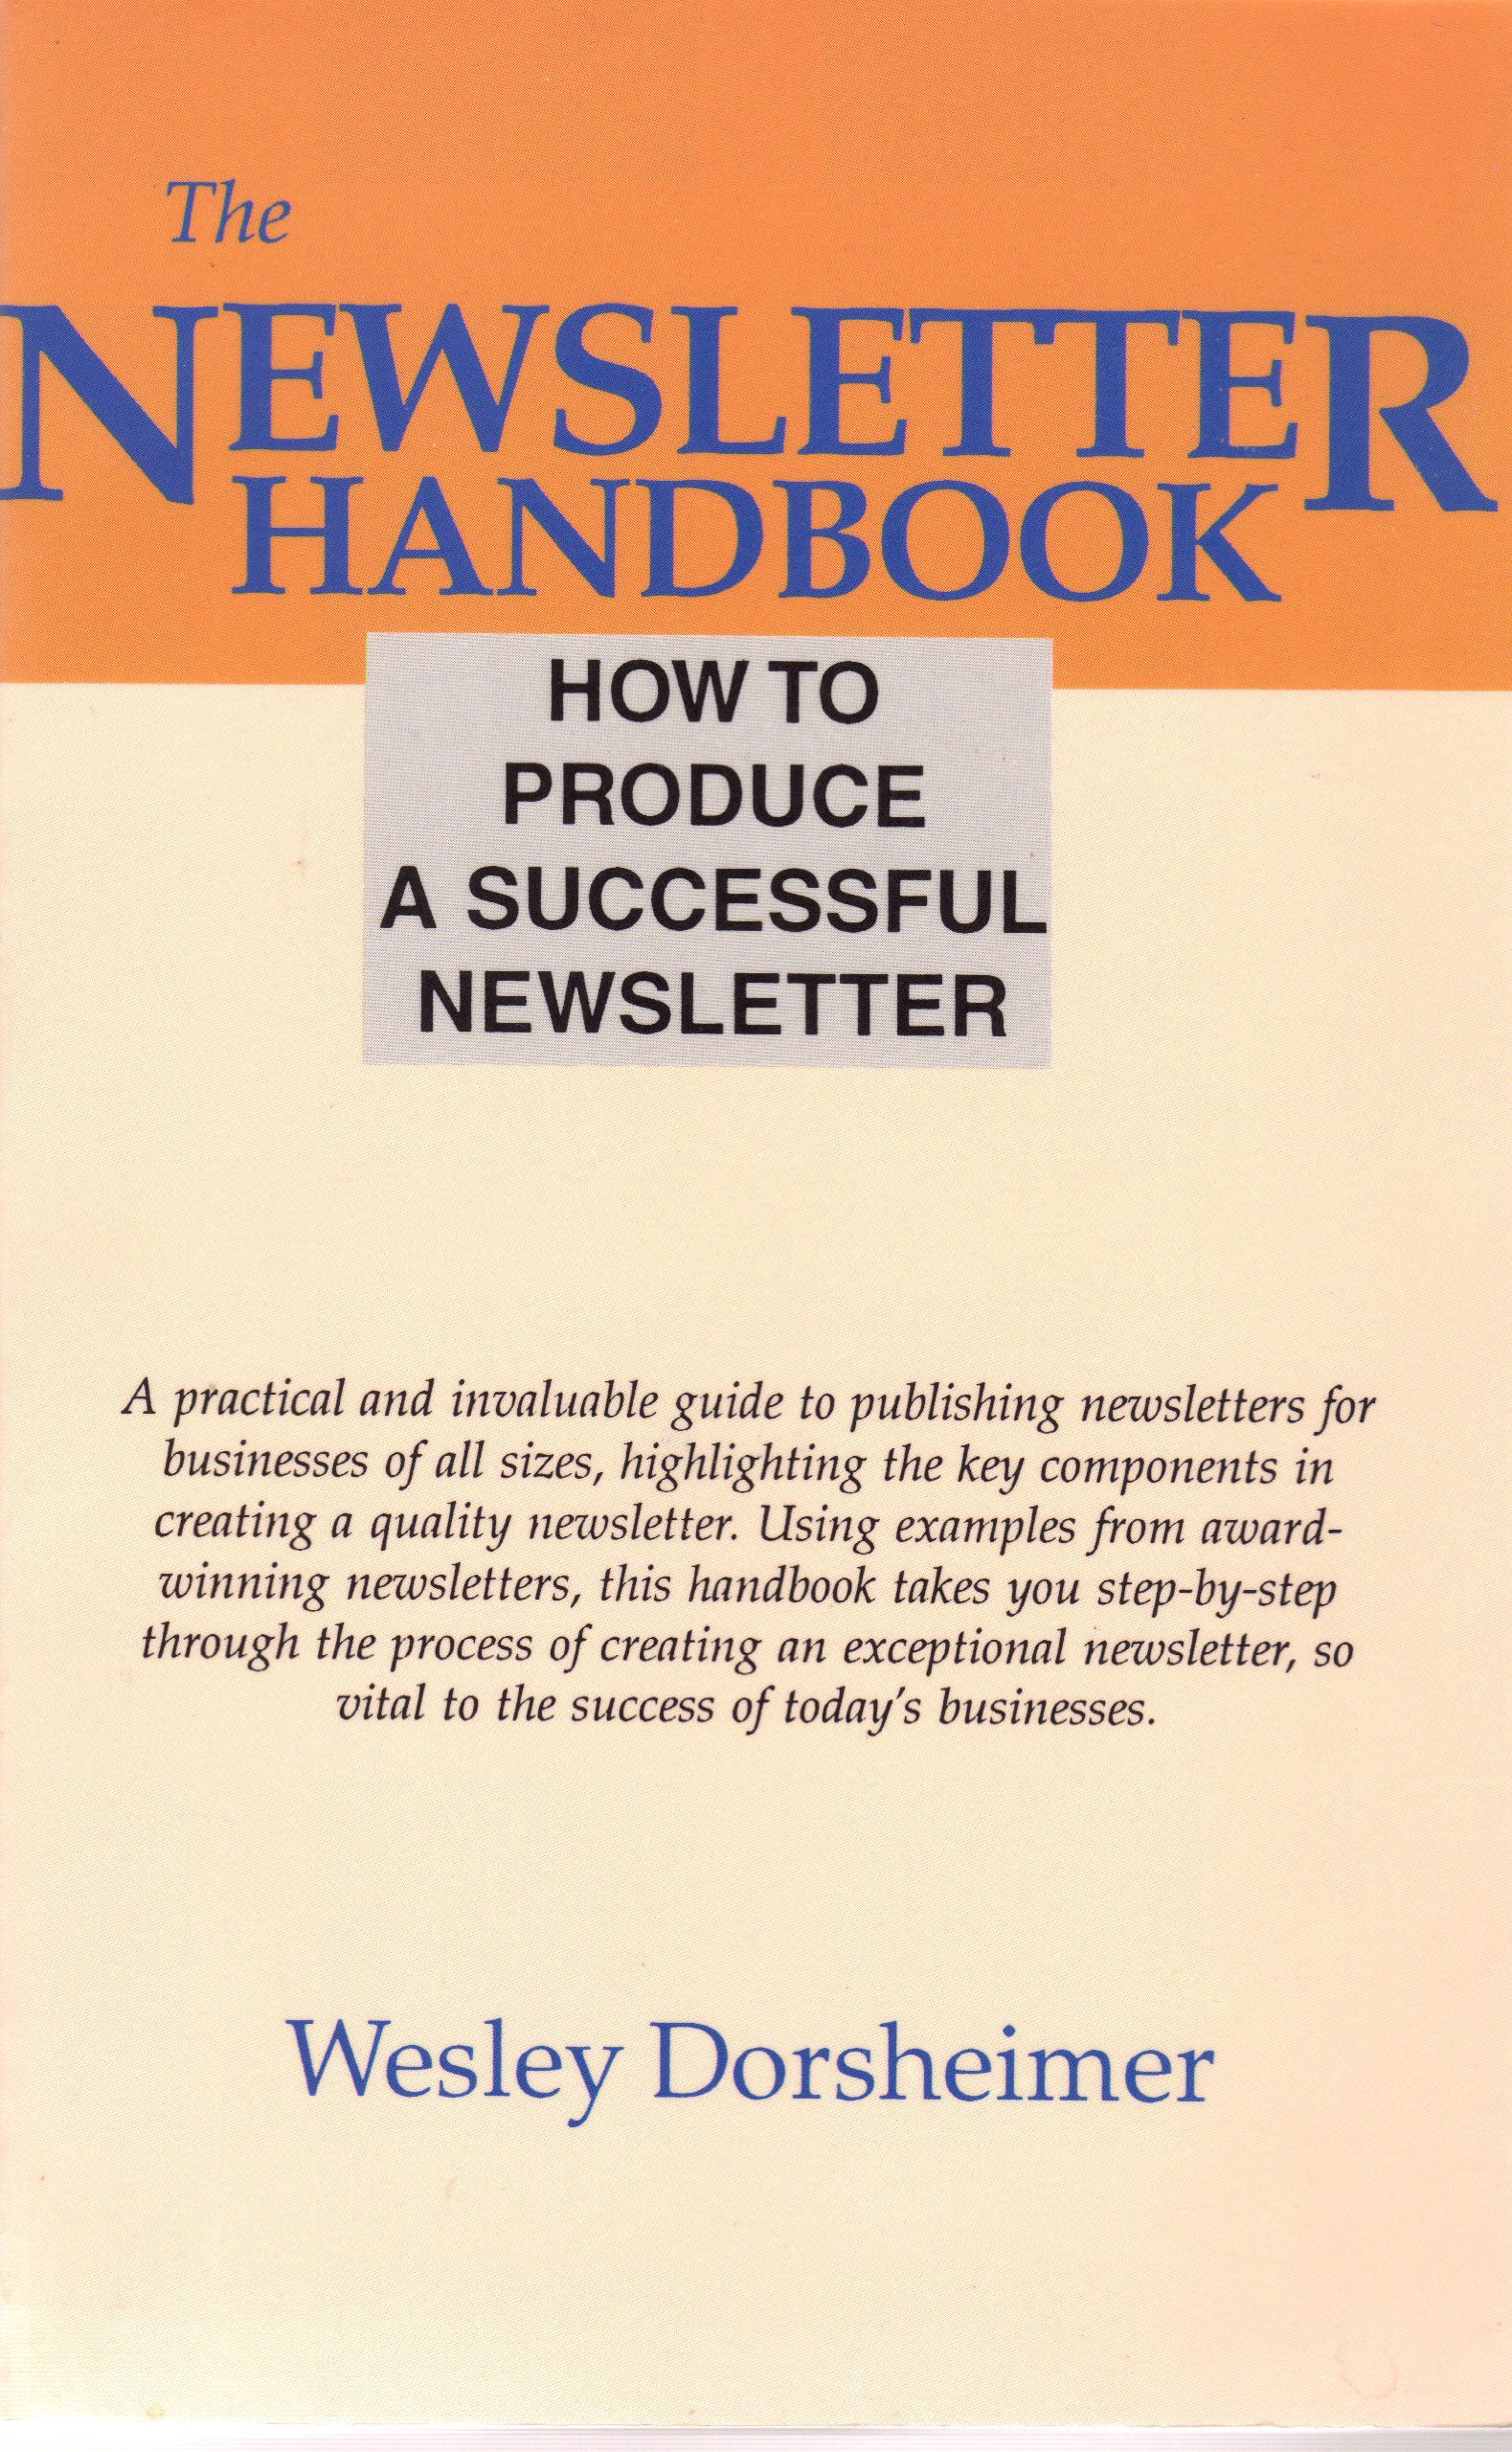 The Newsletter Handbook: How to Write and Publish Newsletters: Amazon.es: Wesley Dorsheimer: Libros en idiomas extranjeros